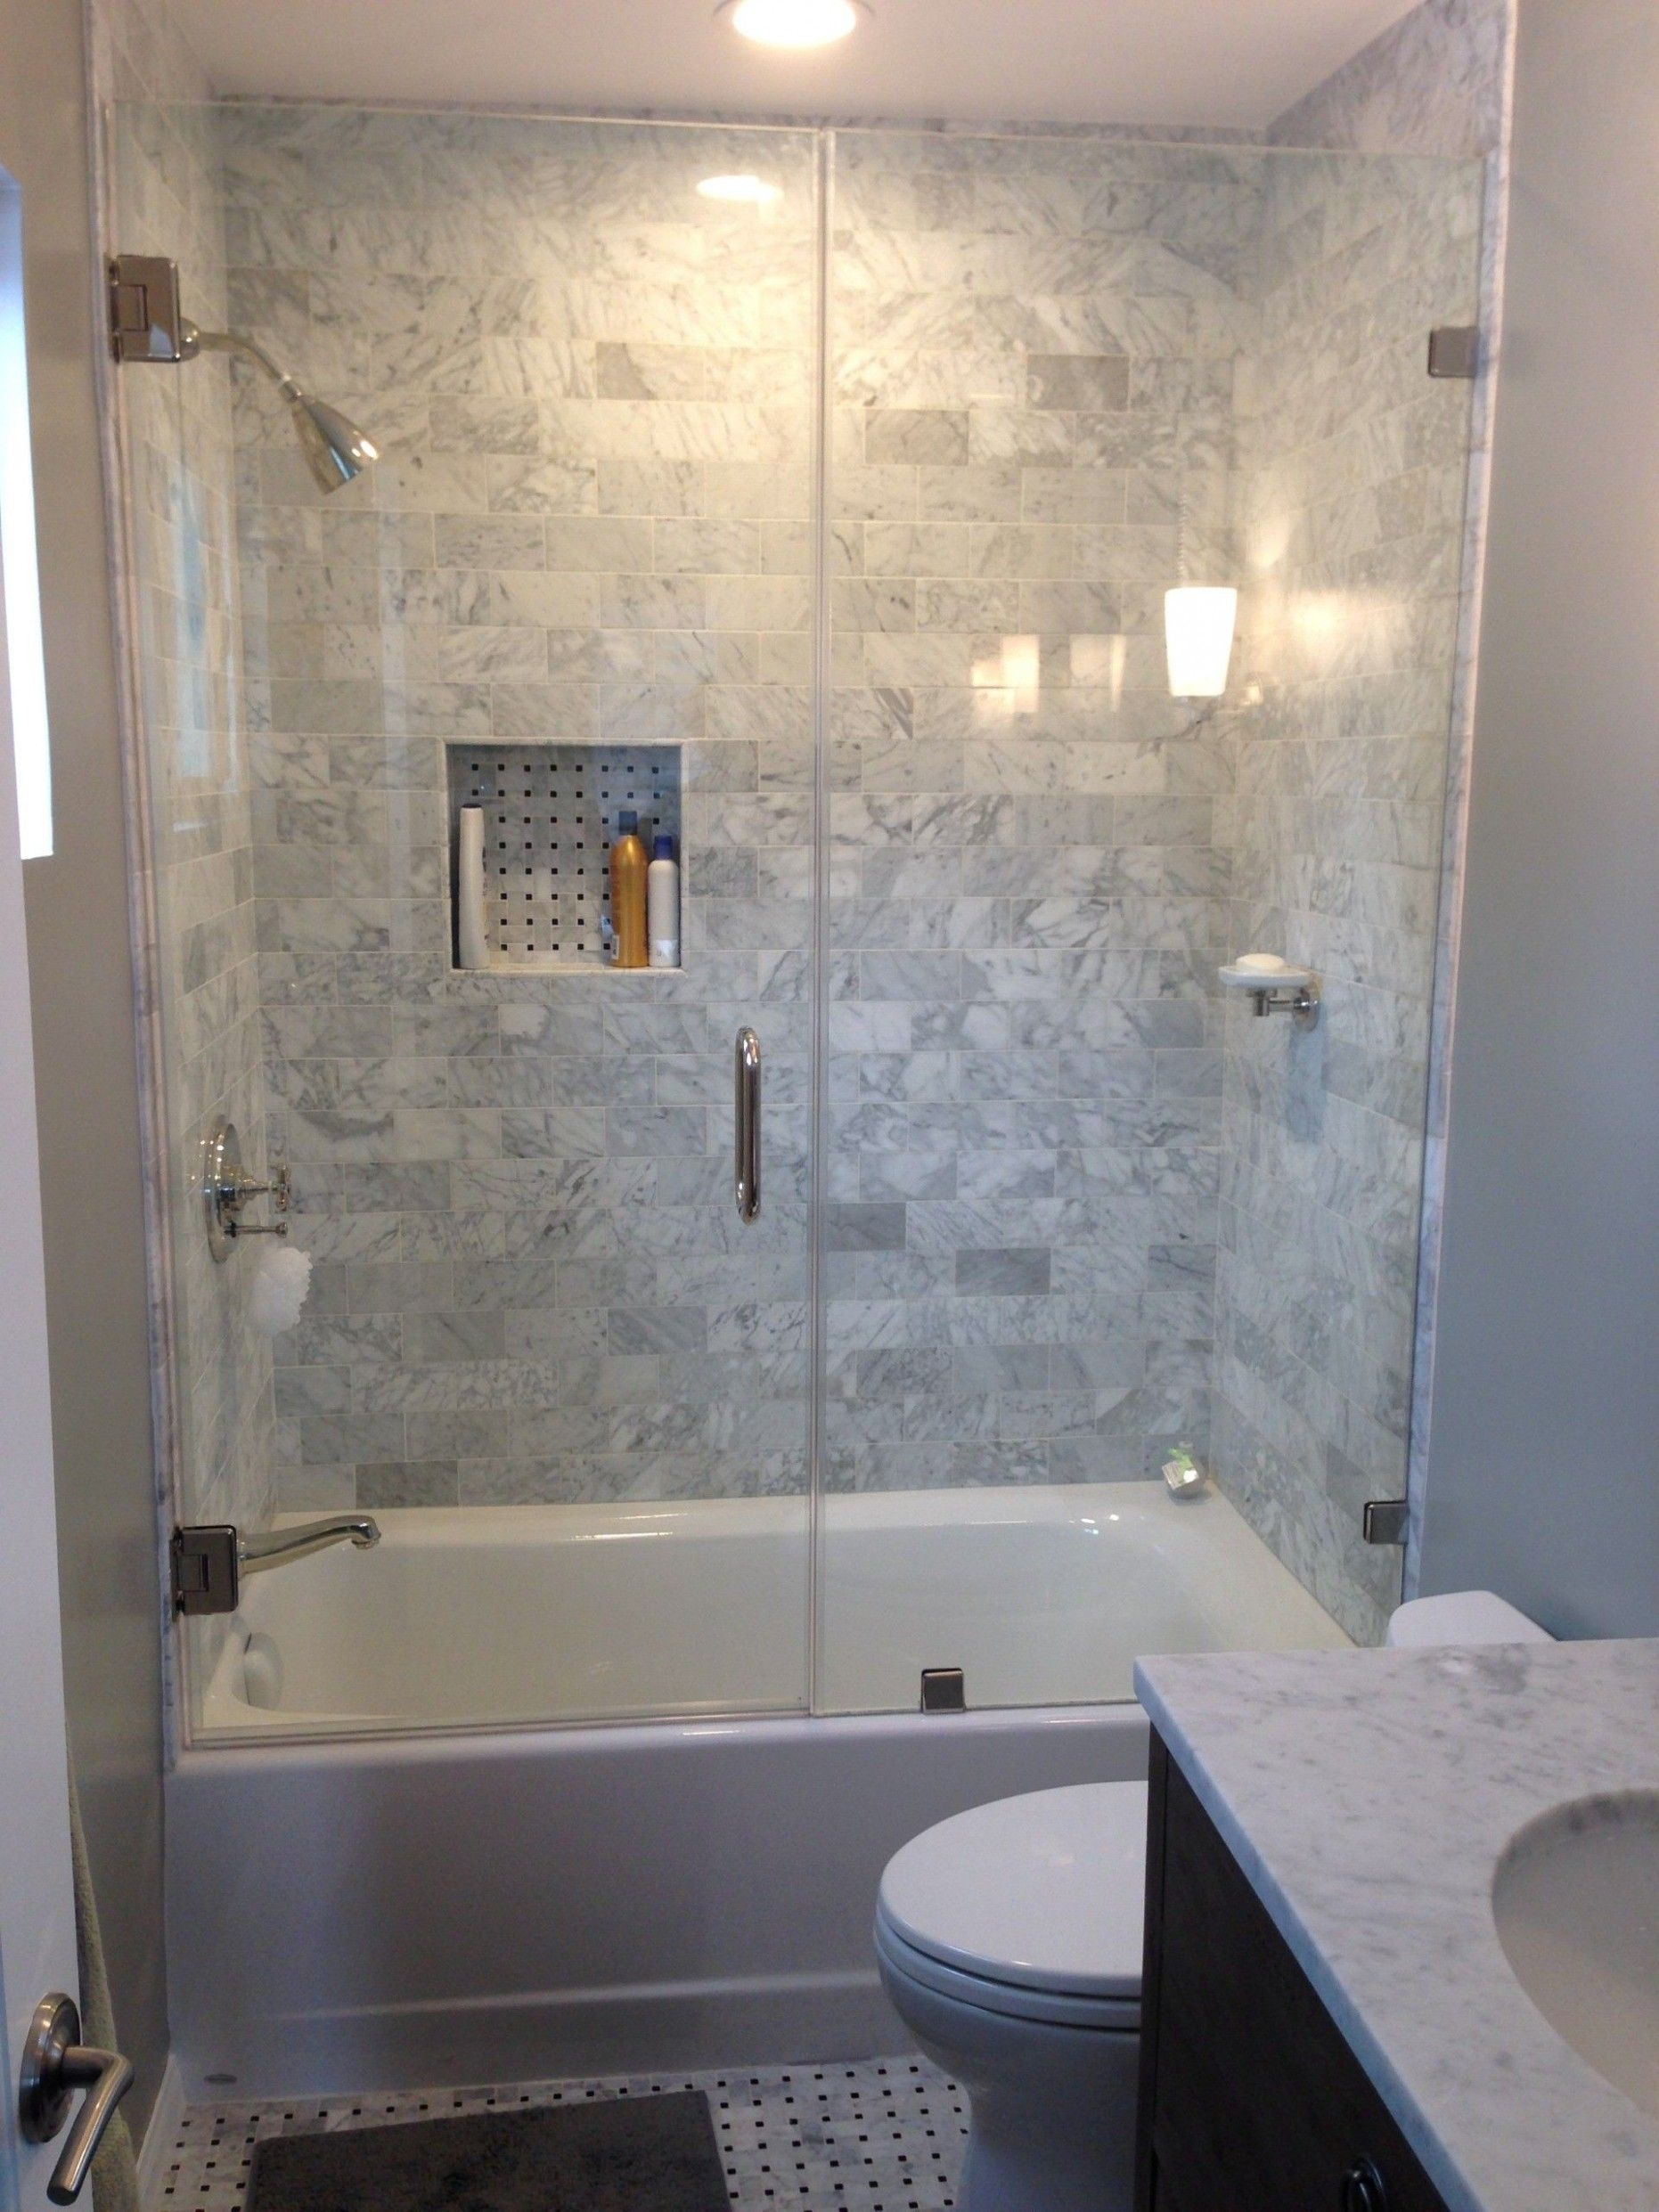 Bathroom Remodel Ideas With Tub And Shower Bathroom Tub Shower Combo Bathroom Remodel Shower Bathroom Tub Shower